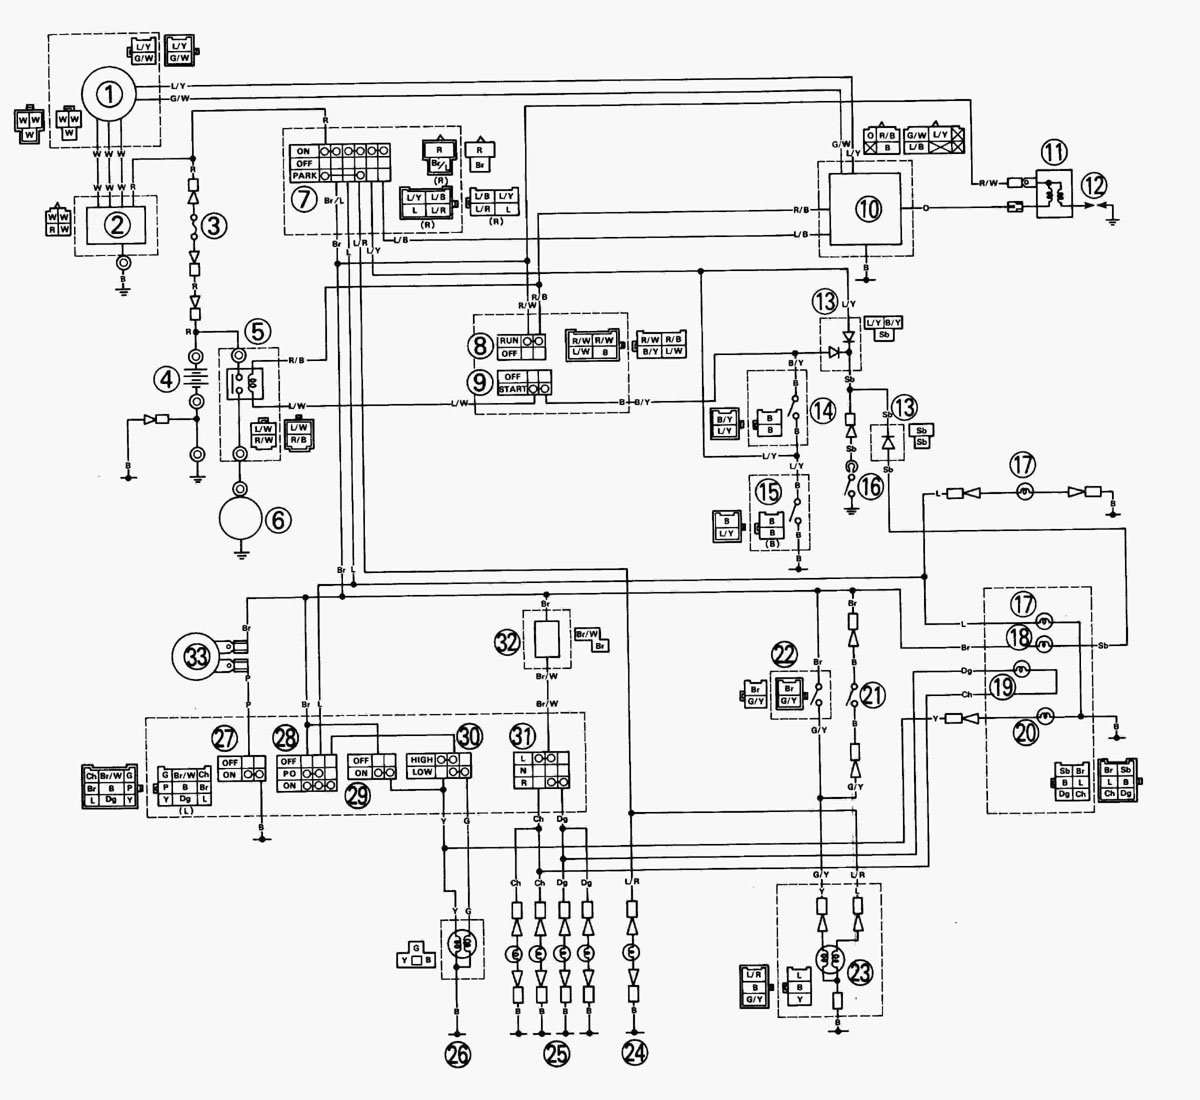 Easy Wiring Diagram Blaster -Ford Expedition Trailer Plug Wiring Diagram |  Begeboy Wiring Diagram Source | 1998 200 Yamaha Blaster Wiring Diagram |  | Begeboy Wiring Diagram Source